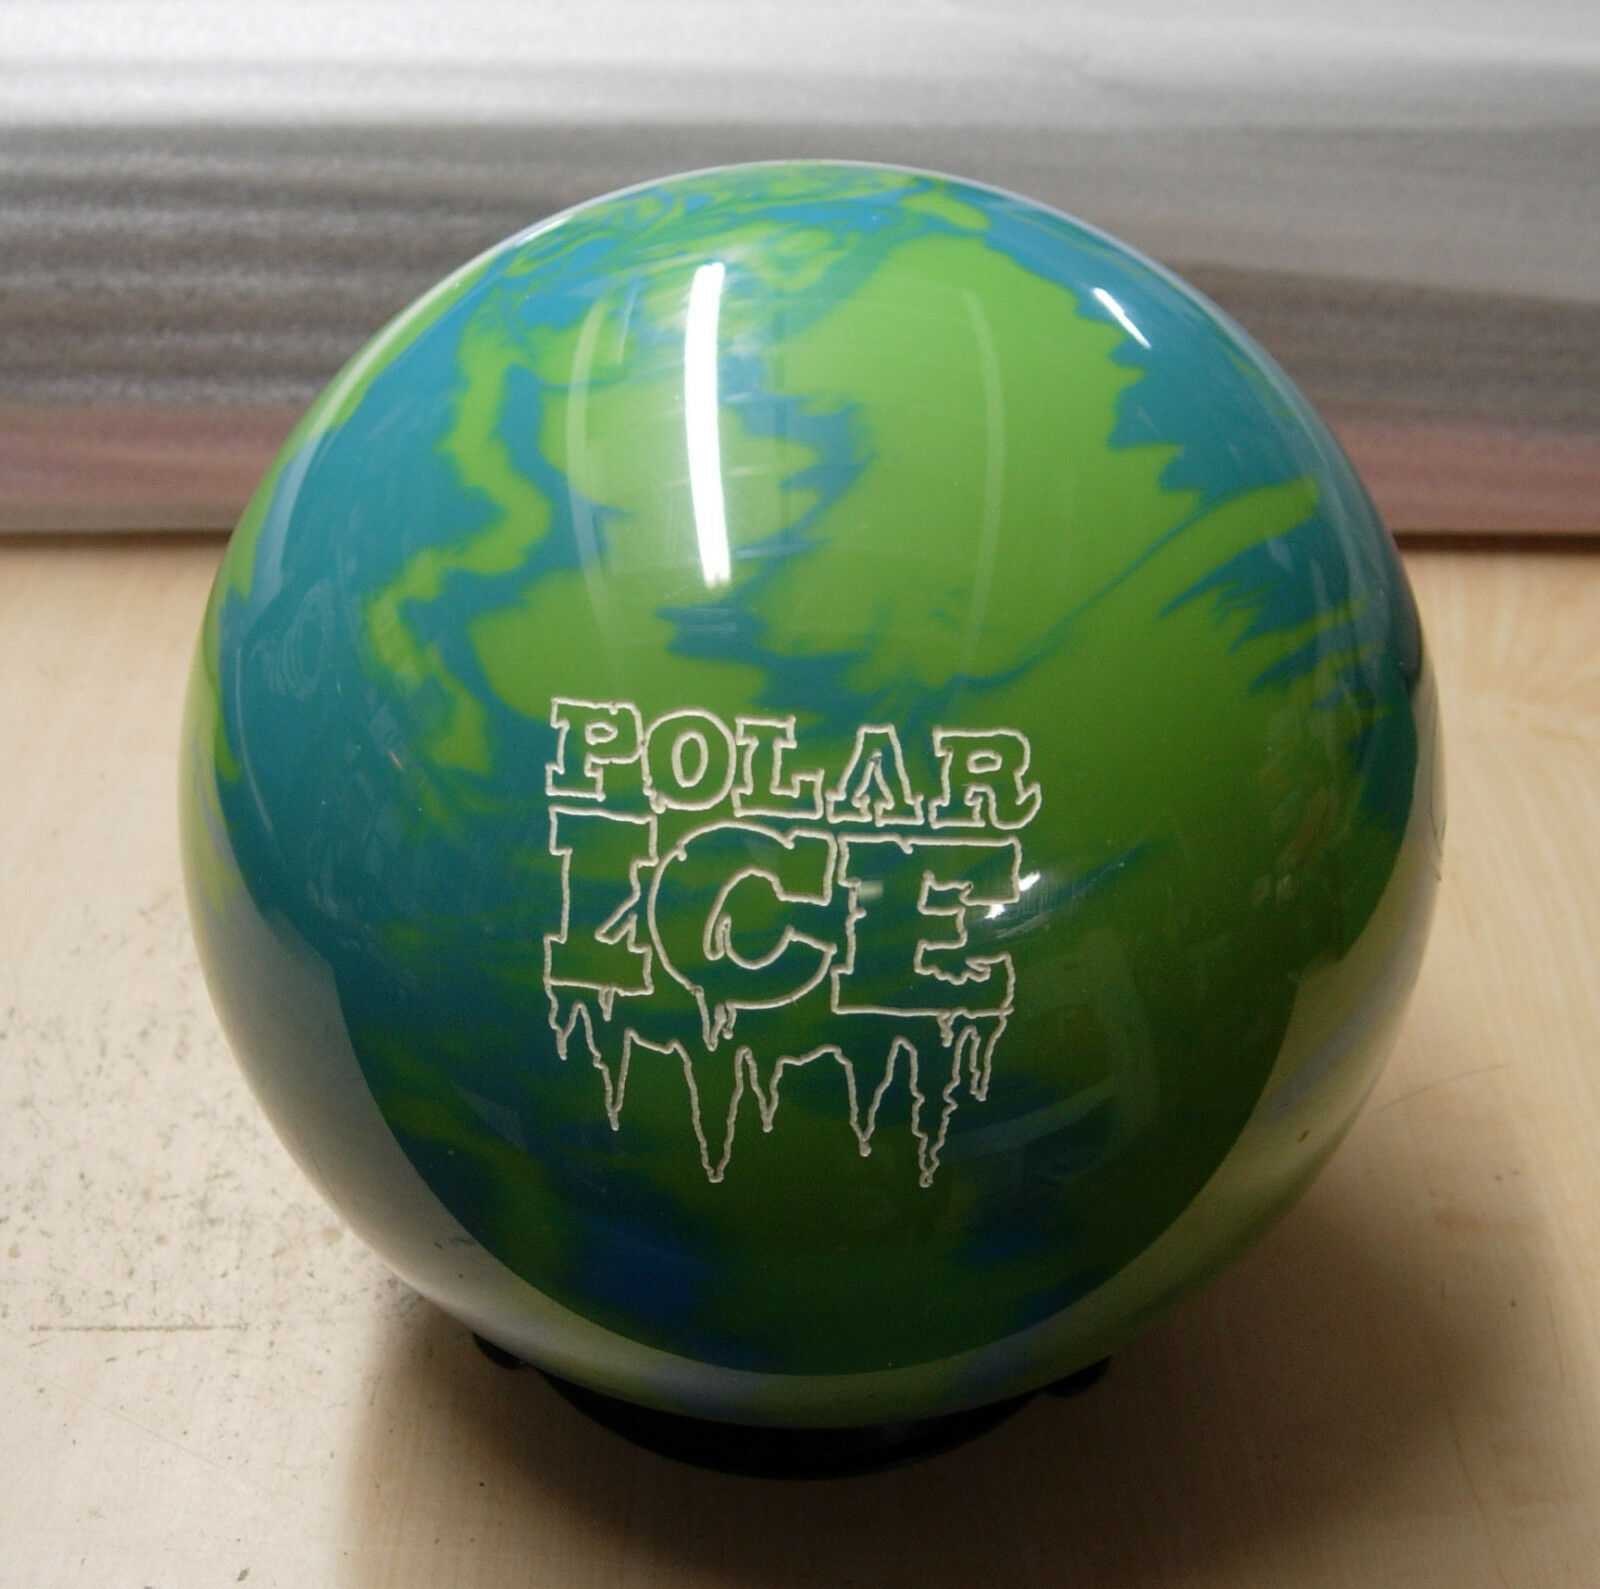 10Former Display wo orig box Storm POLAR ICE Green bluee URETHANE Bowling Ball